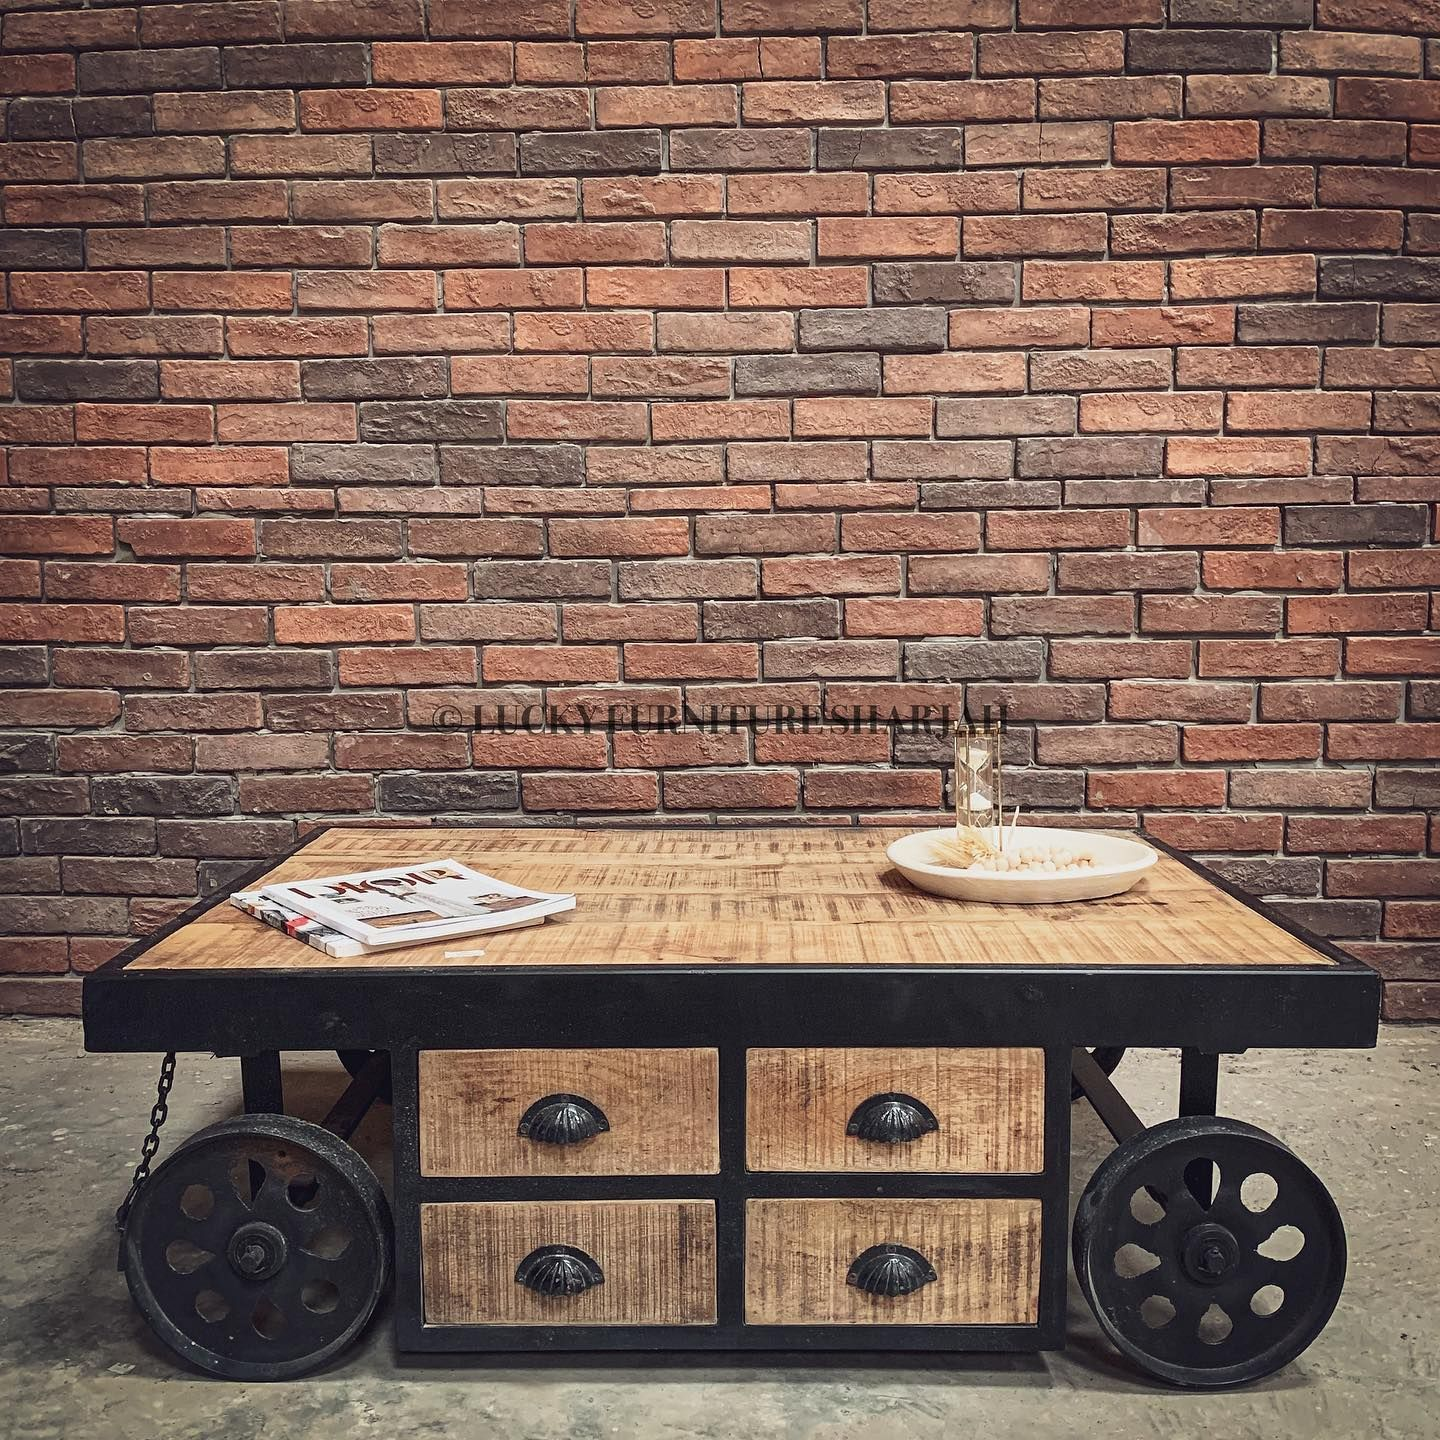 Industrial Wheel And Drawers Coffee Table Now Available For More Information Or To Place An Order Kindly Dm Or Whatsa Coffee Table Table Industrial Wheels [ 1440 x 1440 Pixel ]